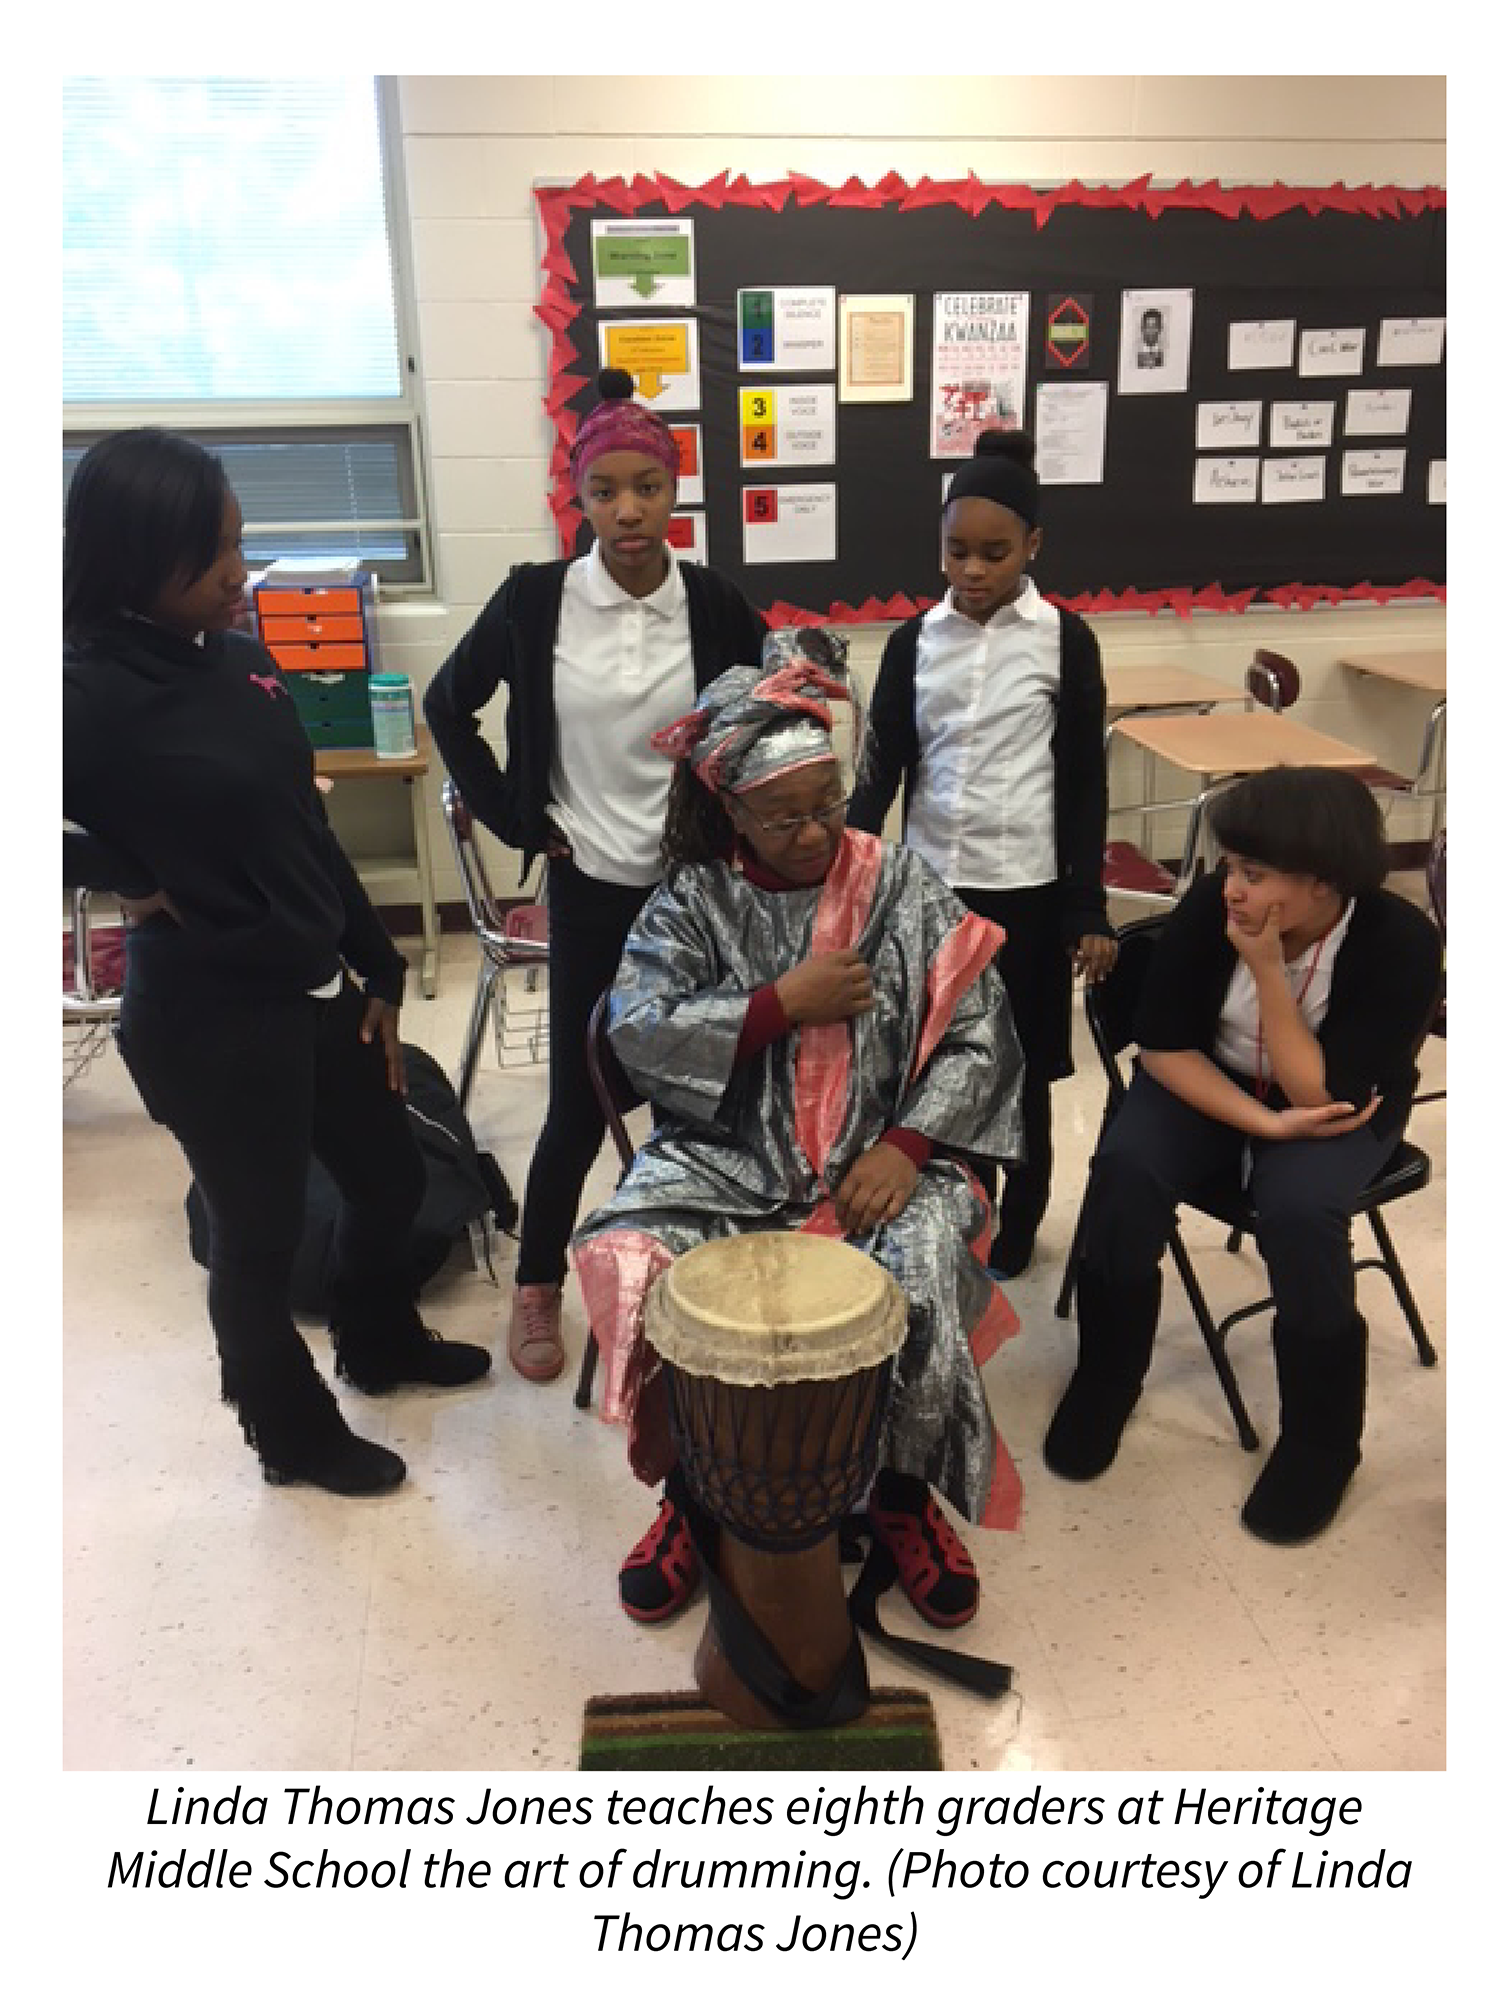 Linda Thomas Jones teaches eighth graders at Heritage Middle School the art of drumming. Photo courtesy of Linda Thomas Jones.